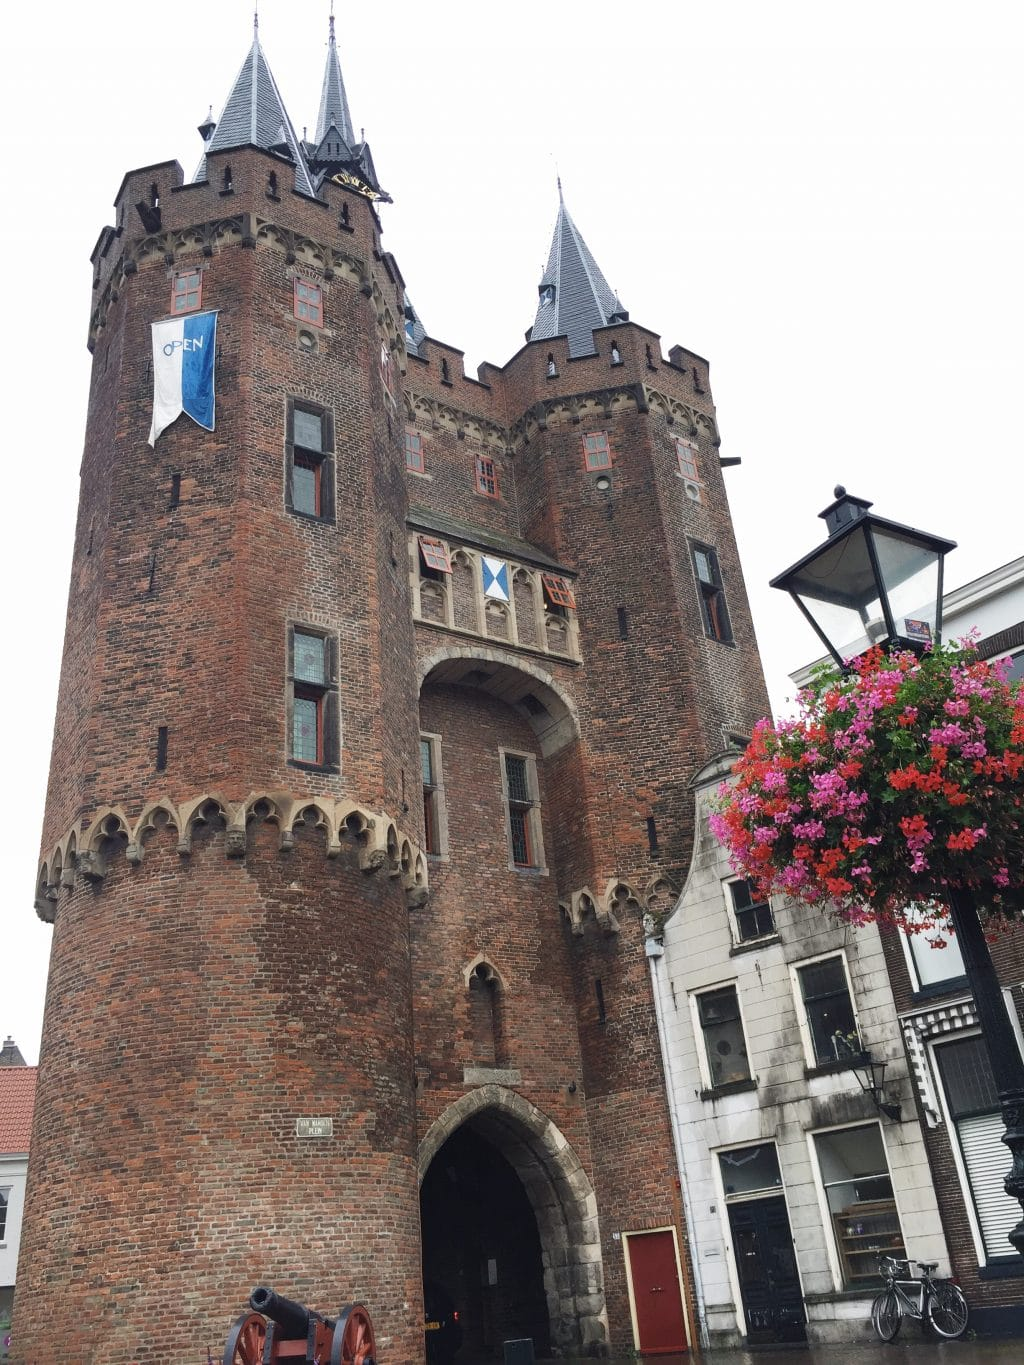 De sassenpoort zwolle made by ellen